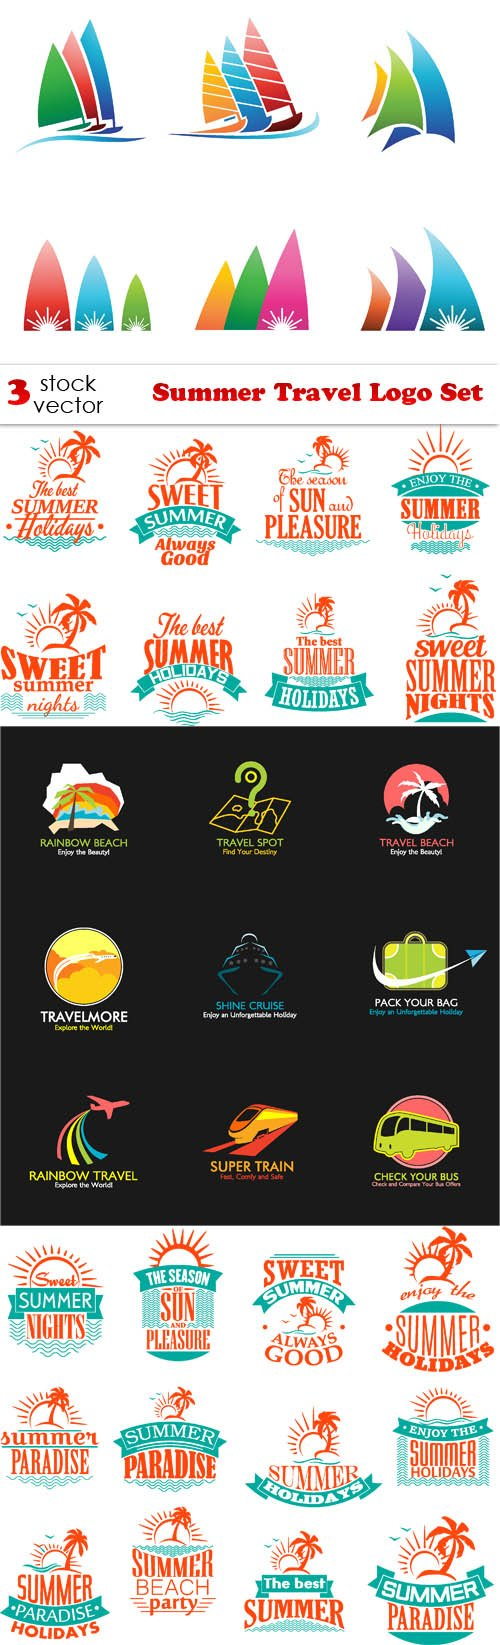 Vectors - Summer Travel Logo Set